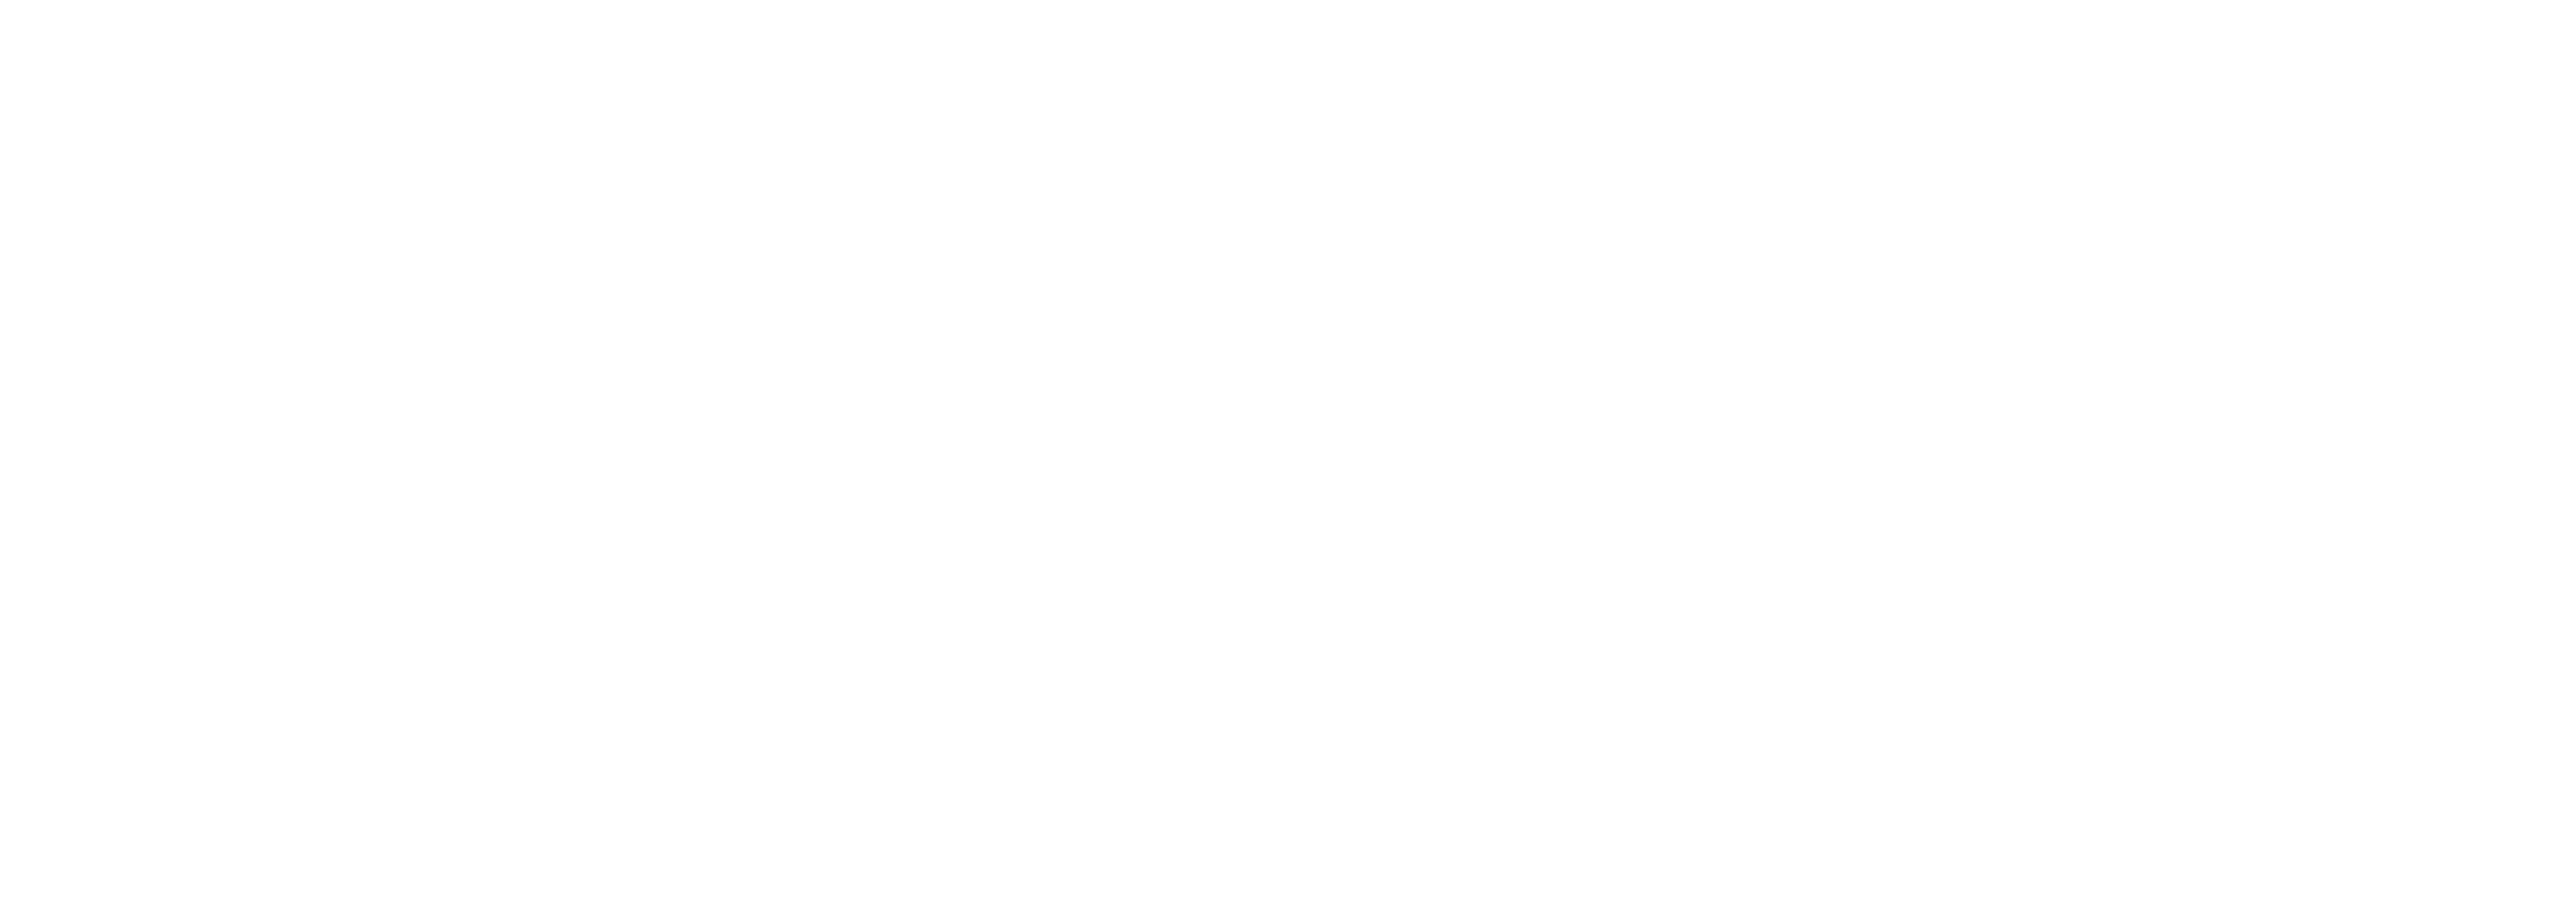 Ceratopia logo in white